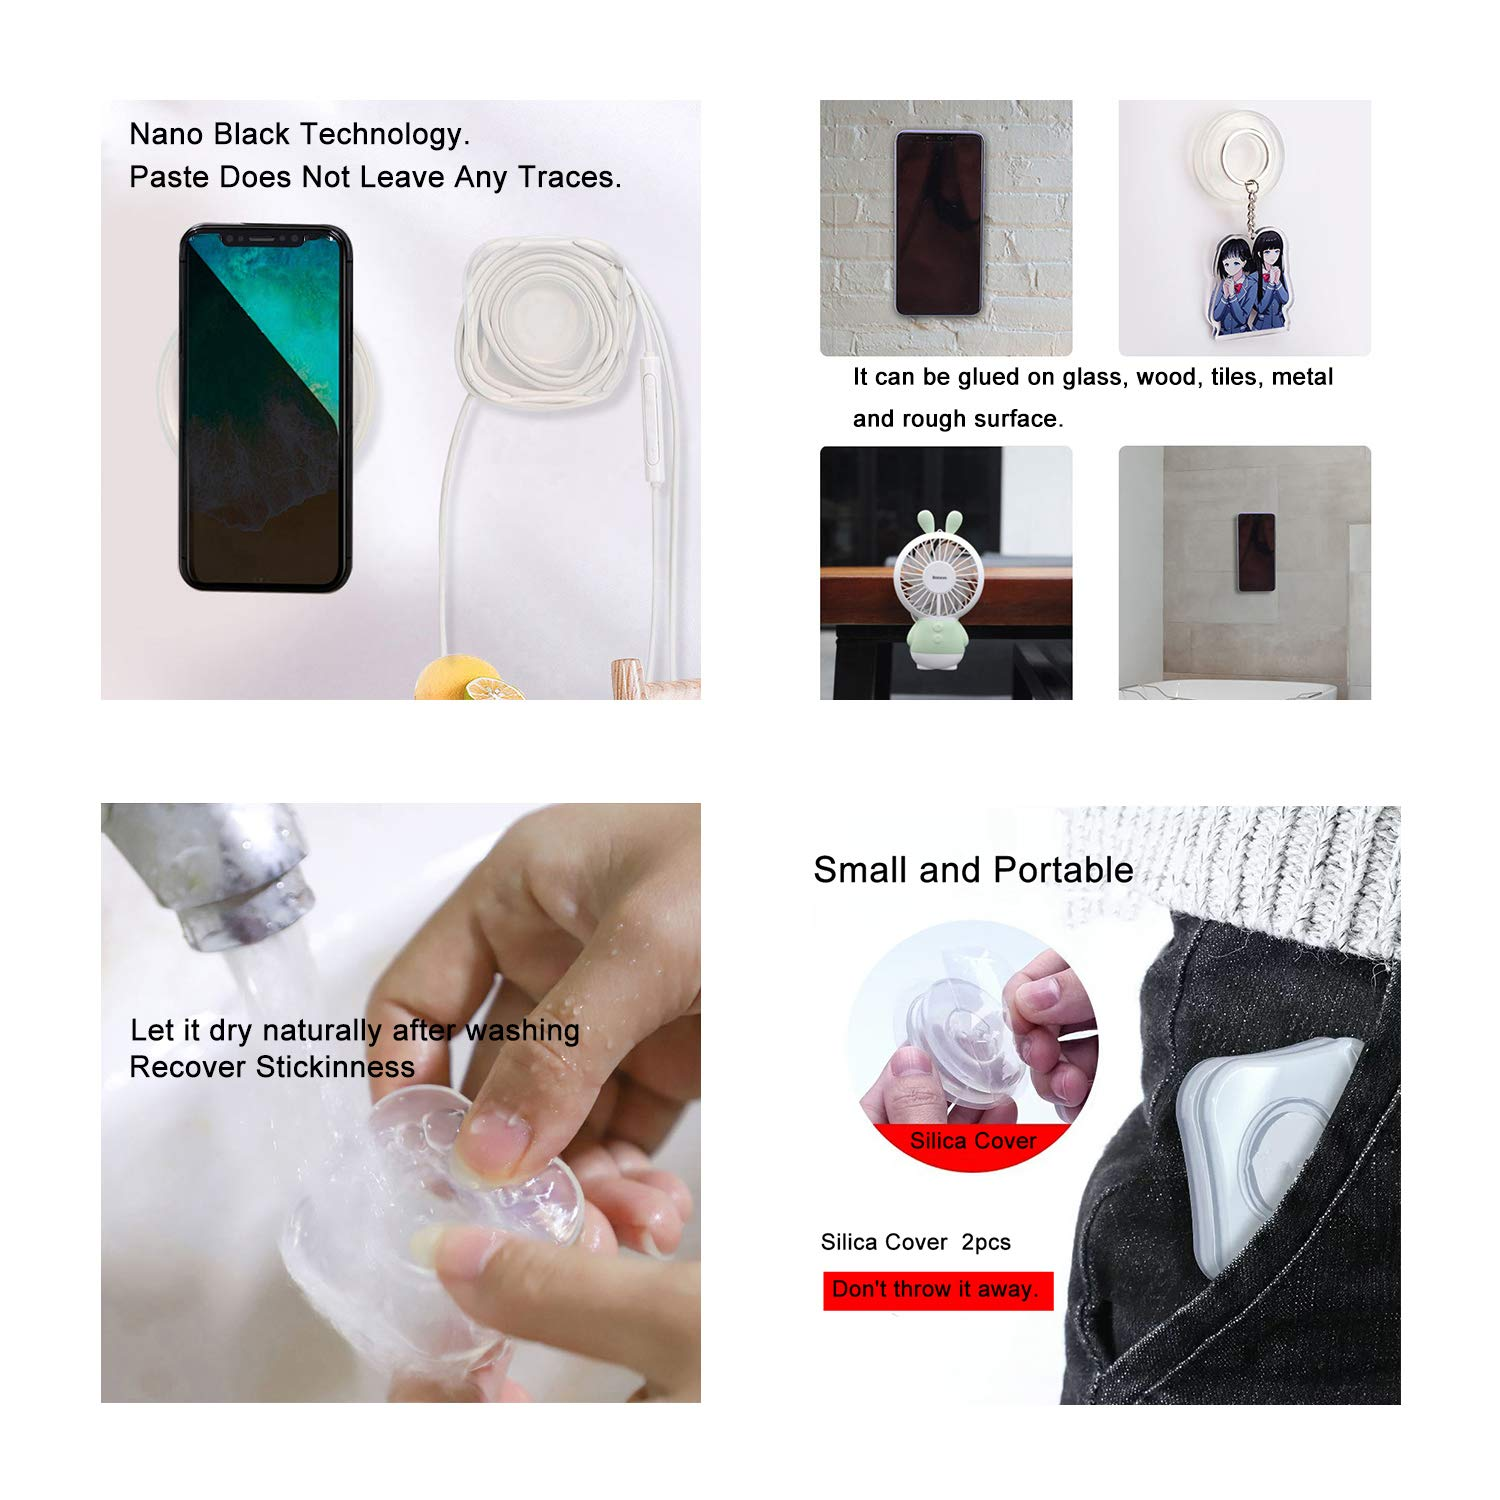 MULTAICH Nano Gel Pad Traceless Magic Stickers,Washable Multi-Functional Universal Sticky Car Phone Holder,Application for Car,Home,Office Storage of Various Small Device and Items(1 Pack)